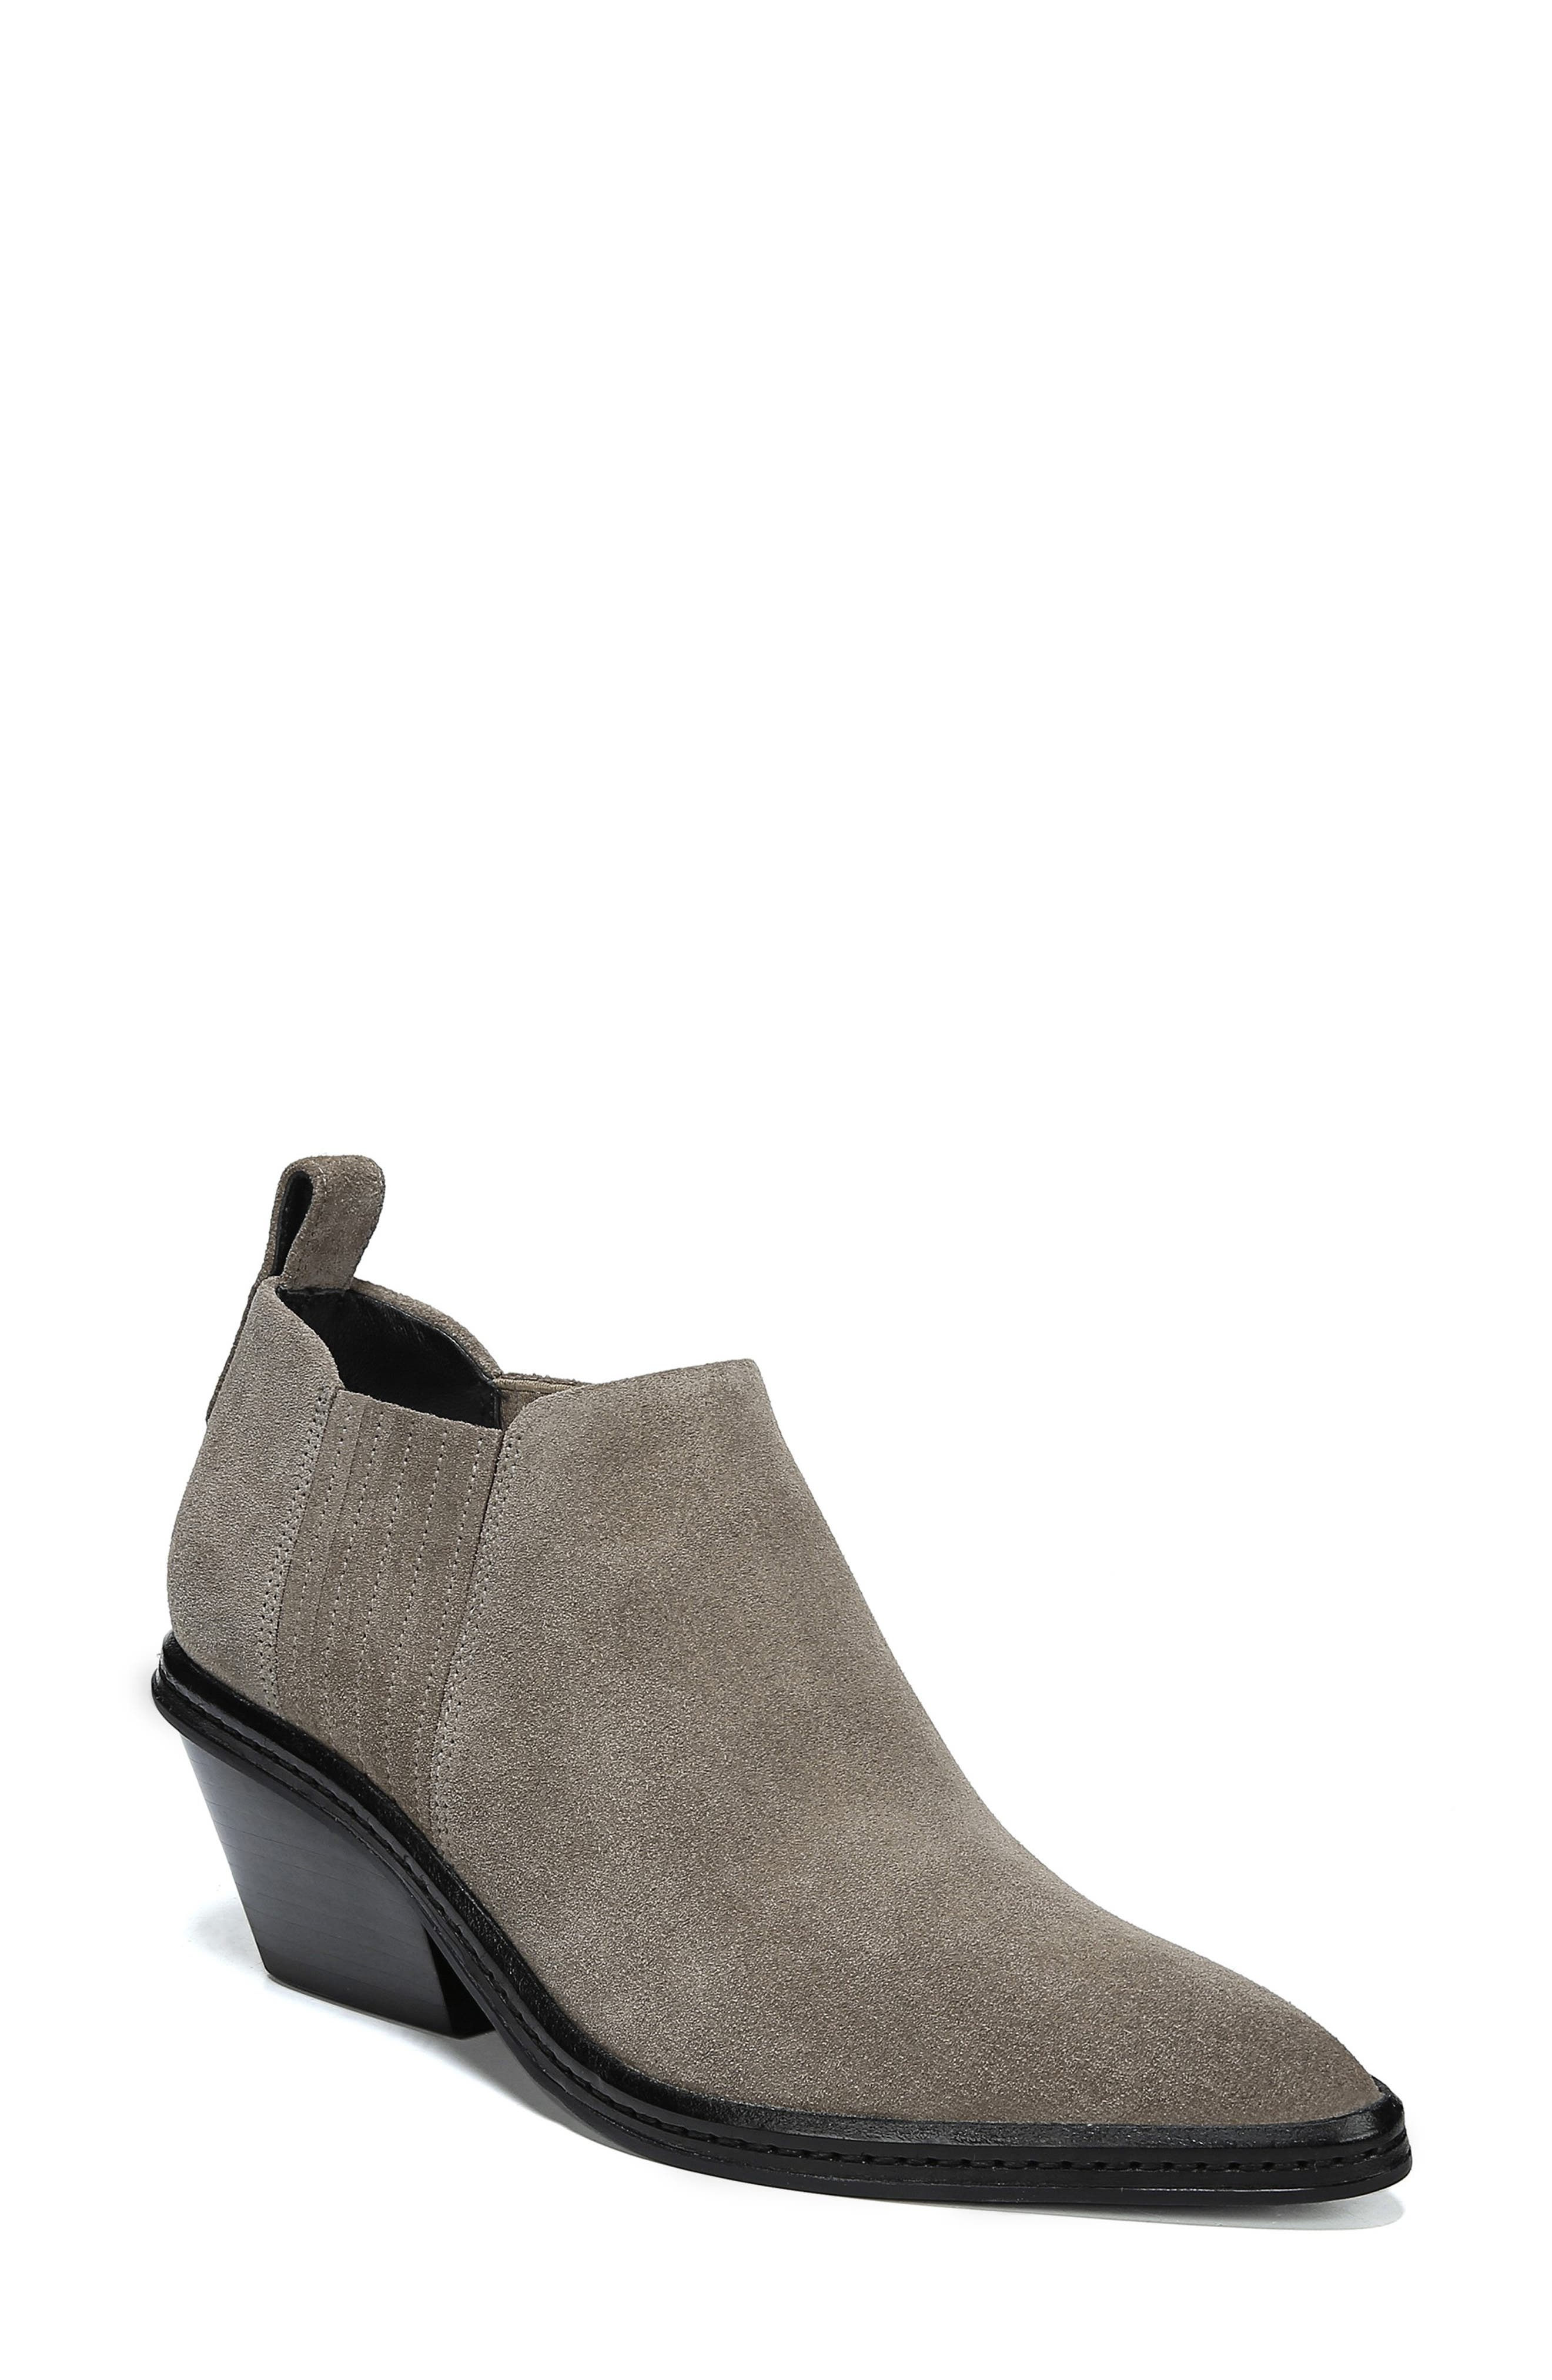 Women'S Farly Pointed Toe Suede Mid-Heel Ankle Booties in Clay Suede